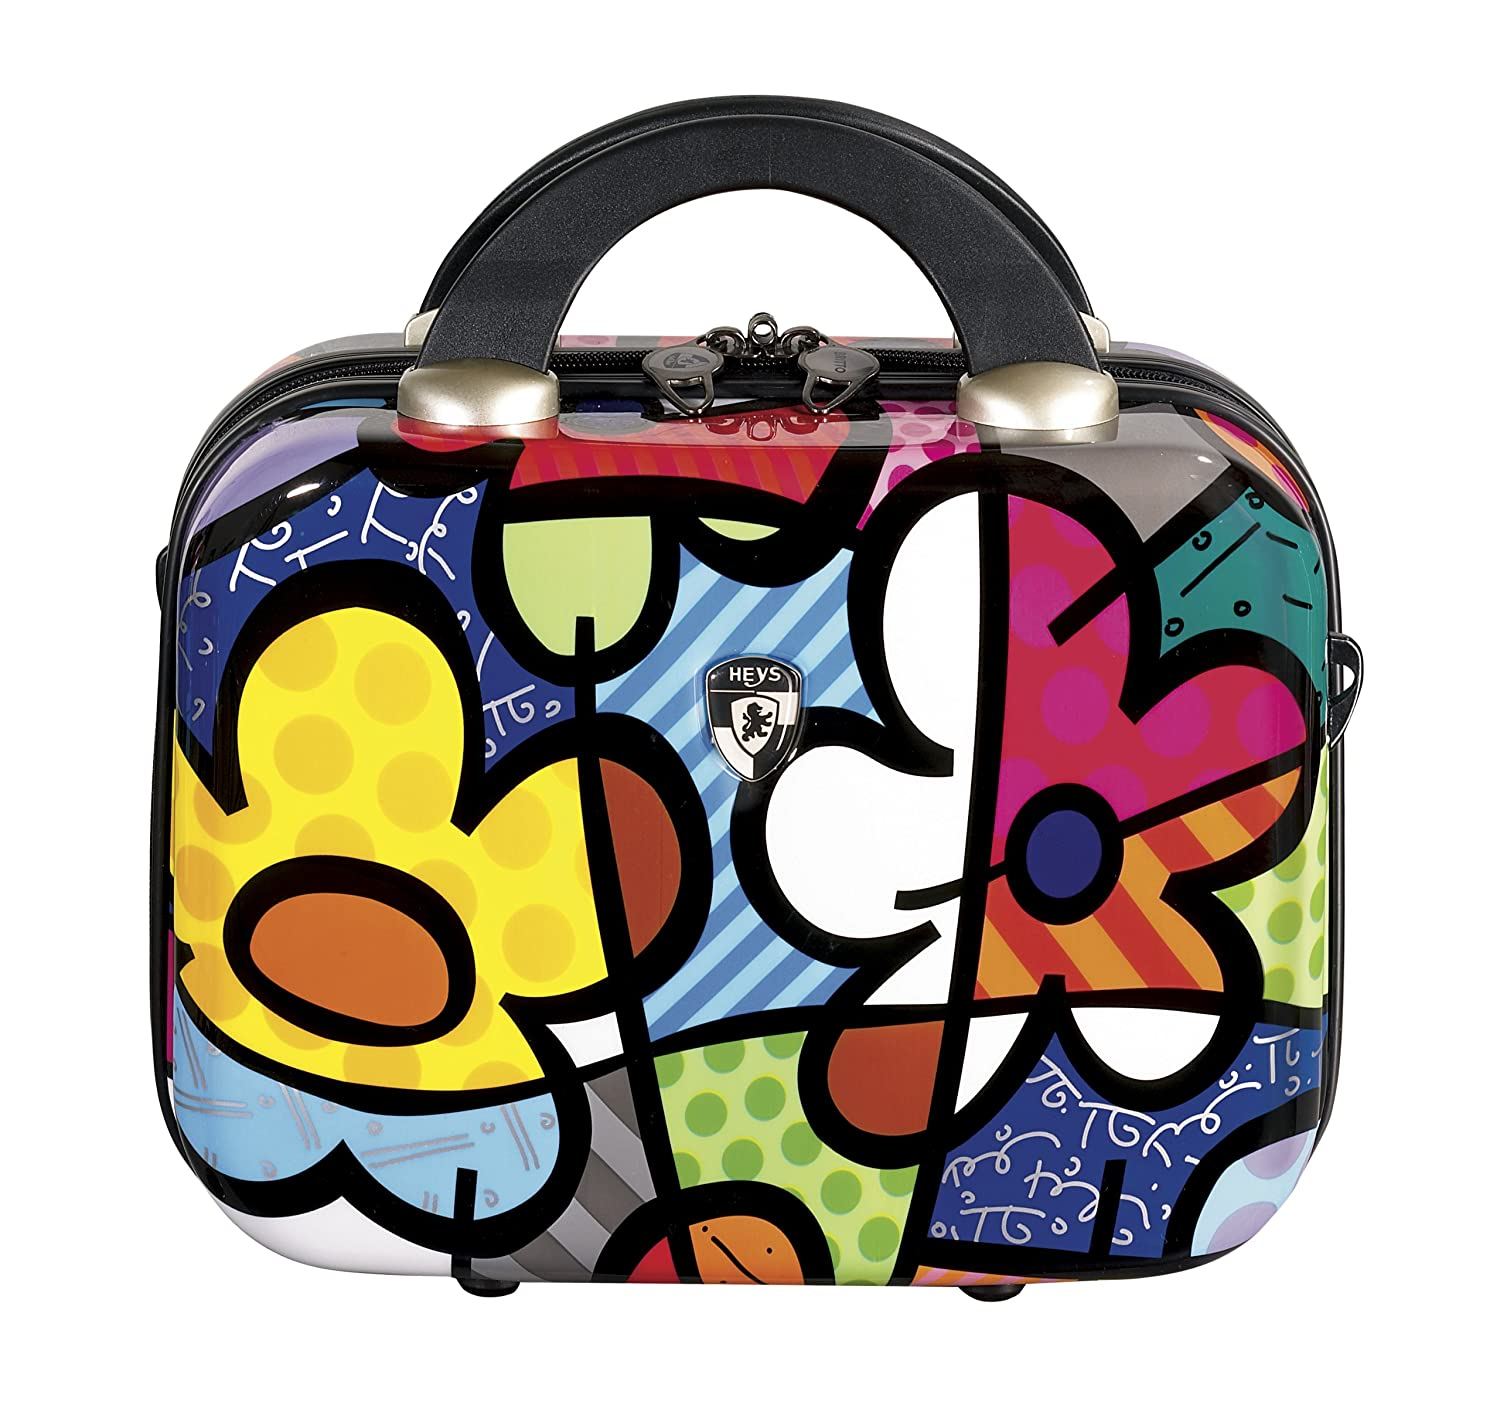 Heys – Künstler Britto Blumen Carry On Beauty Case